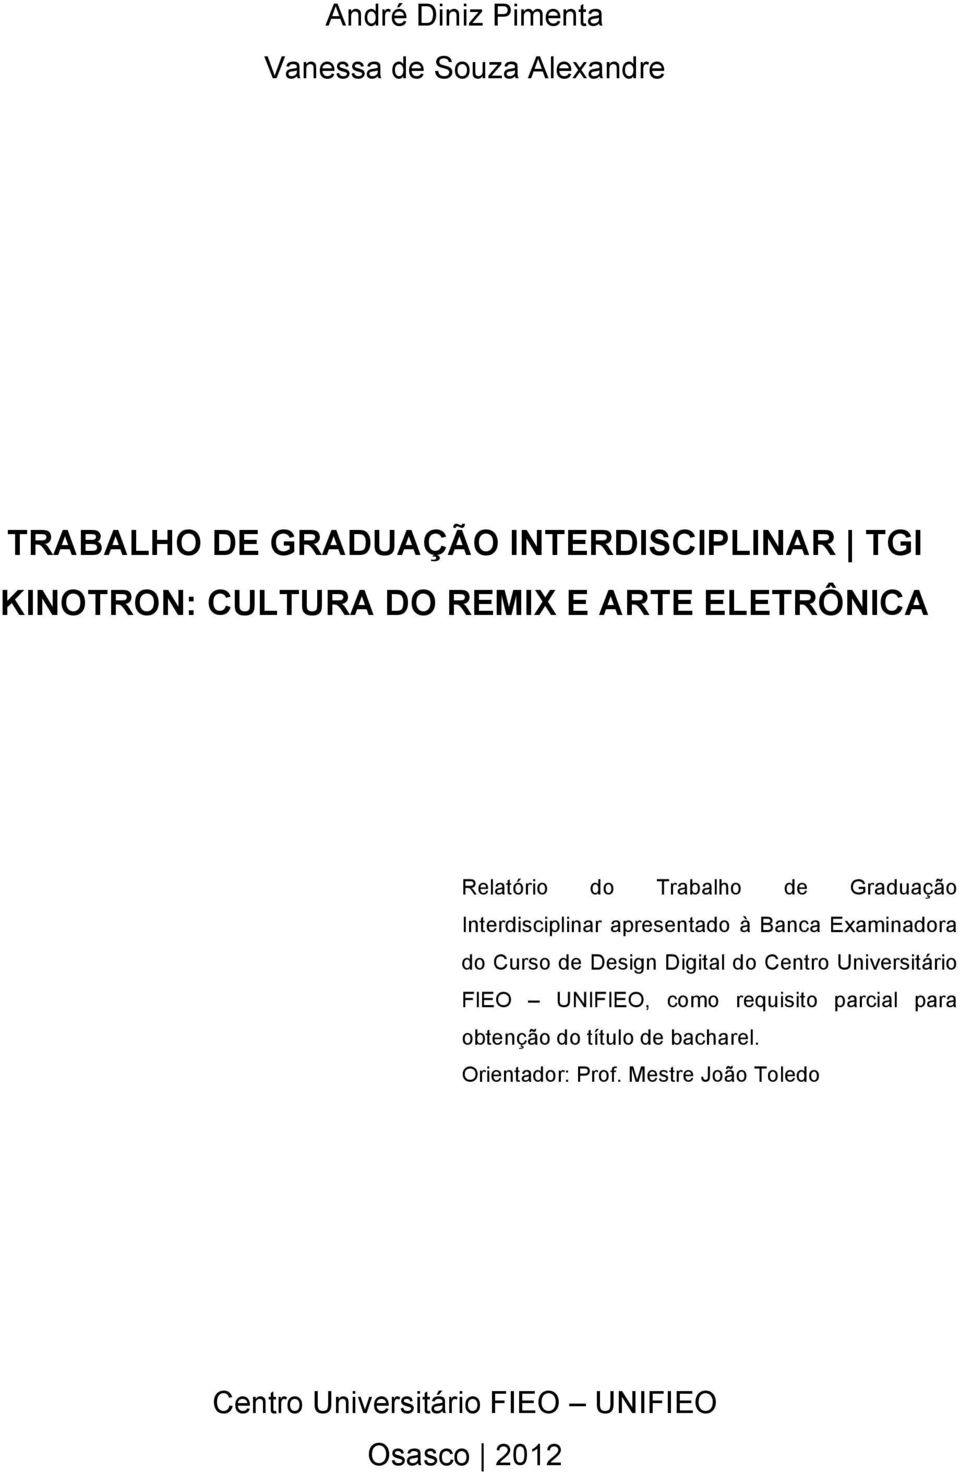 Examinadora do Curso de Design Digital do Centro Universitário FIEO UNIFIEO, como requisito parcial para